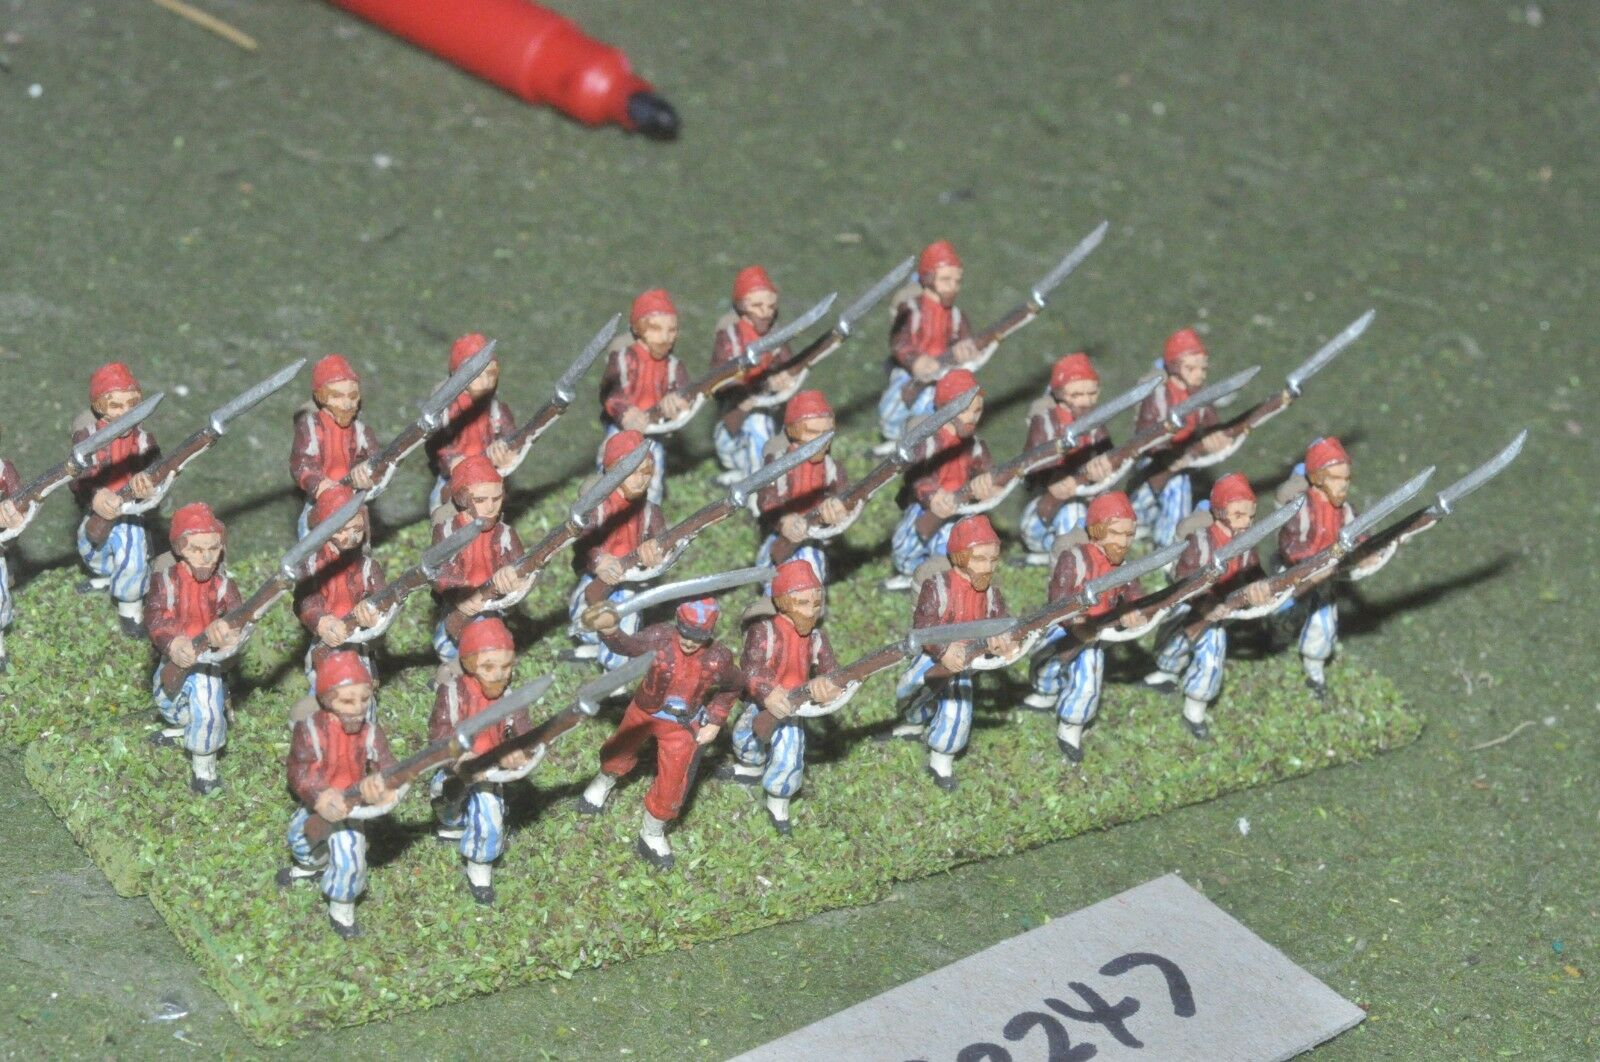 25mm ACW   confederate confederate confederate - regt. 23 figures - inf (32247) 23a34b